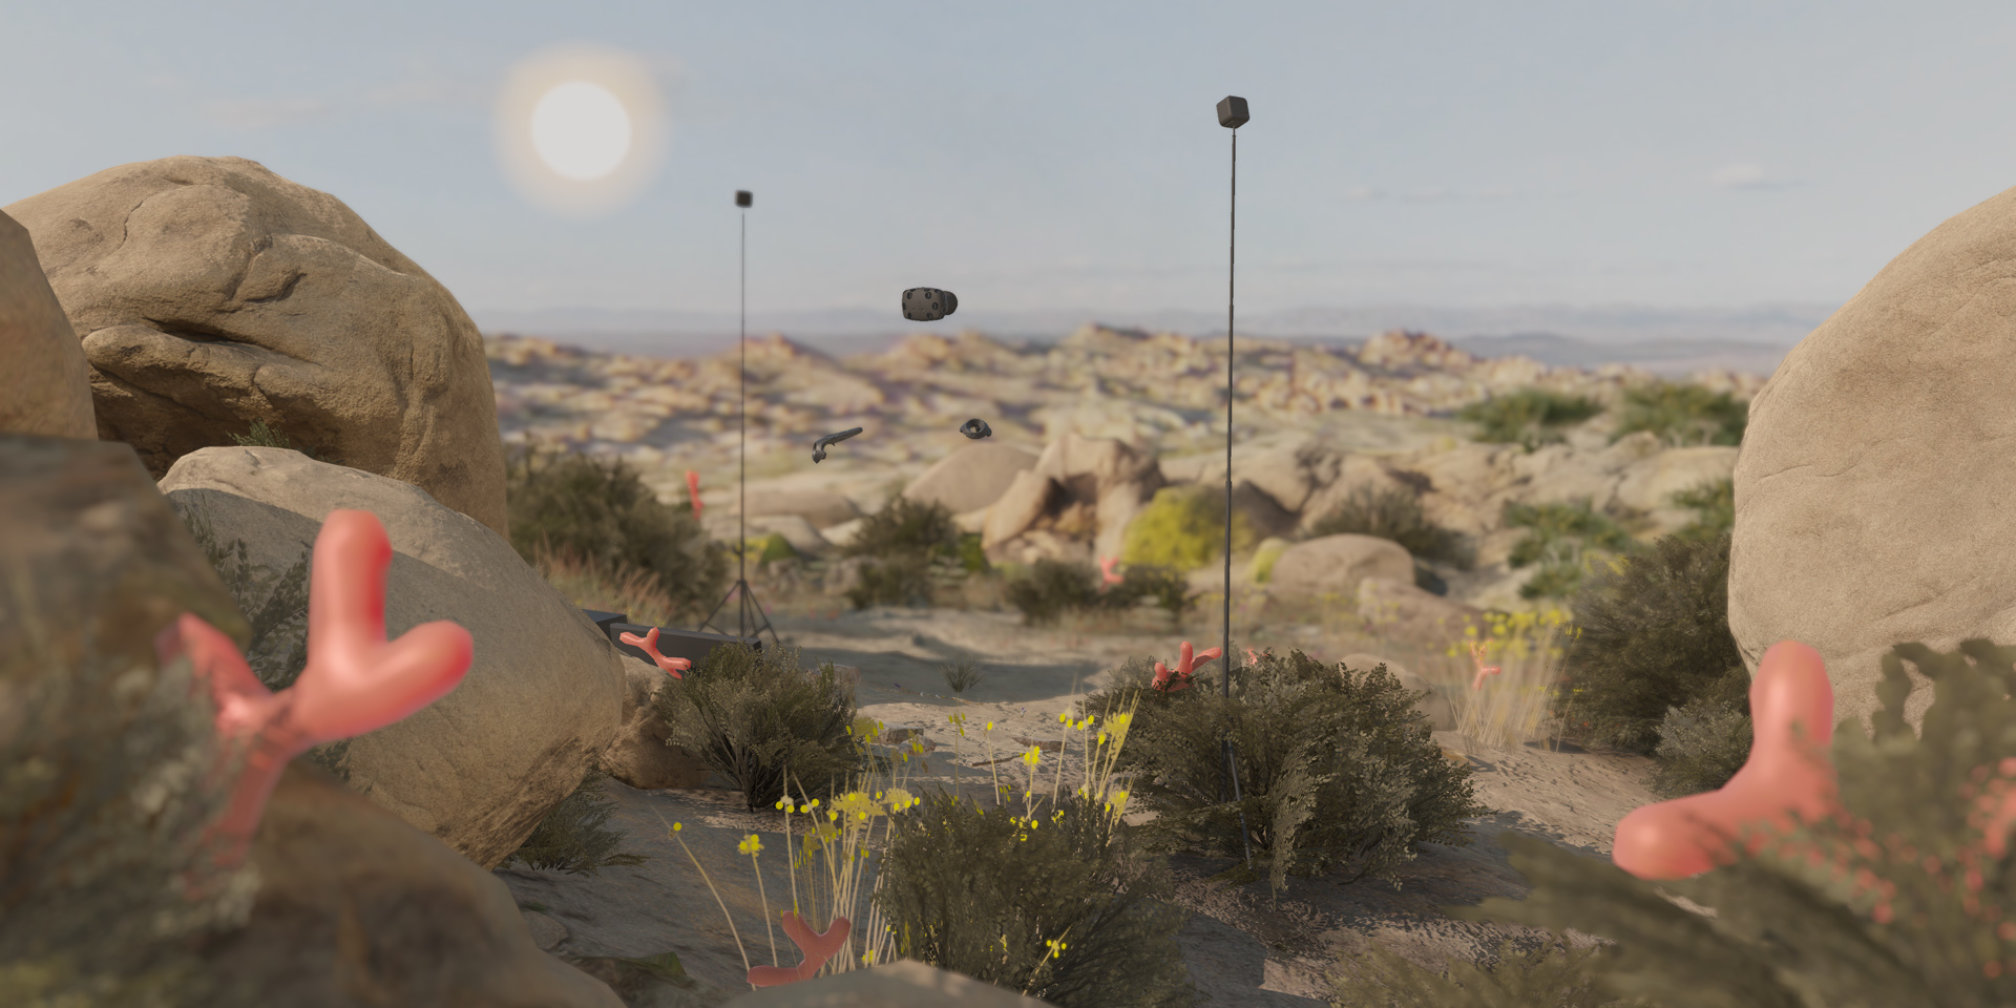 Theo Triantafyllidis, Staphyloculus (or the paradox of site specificity of virtual realities), 2017. Virtual Reality, 5 min. Courtesy the artist